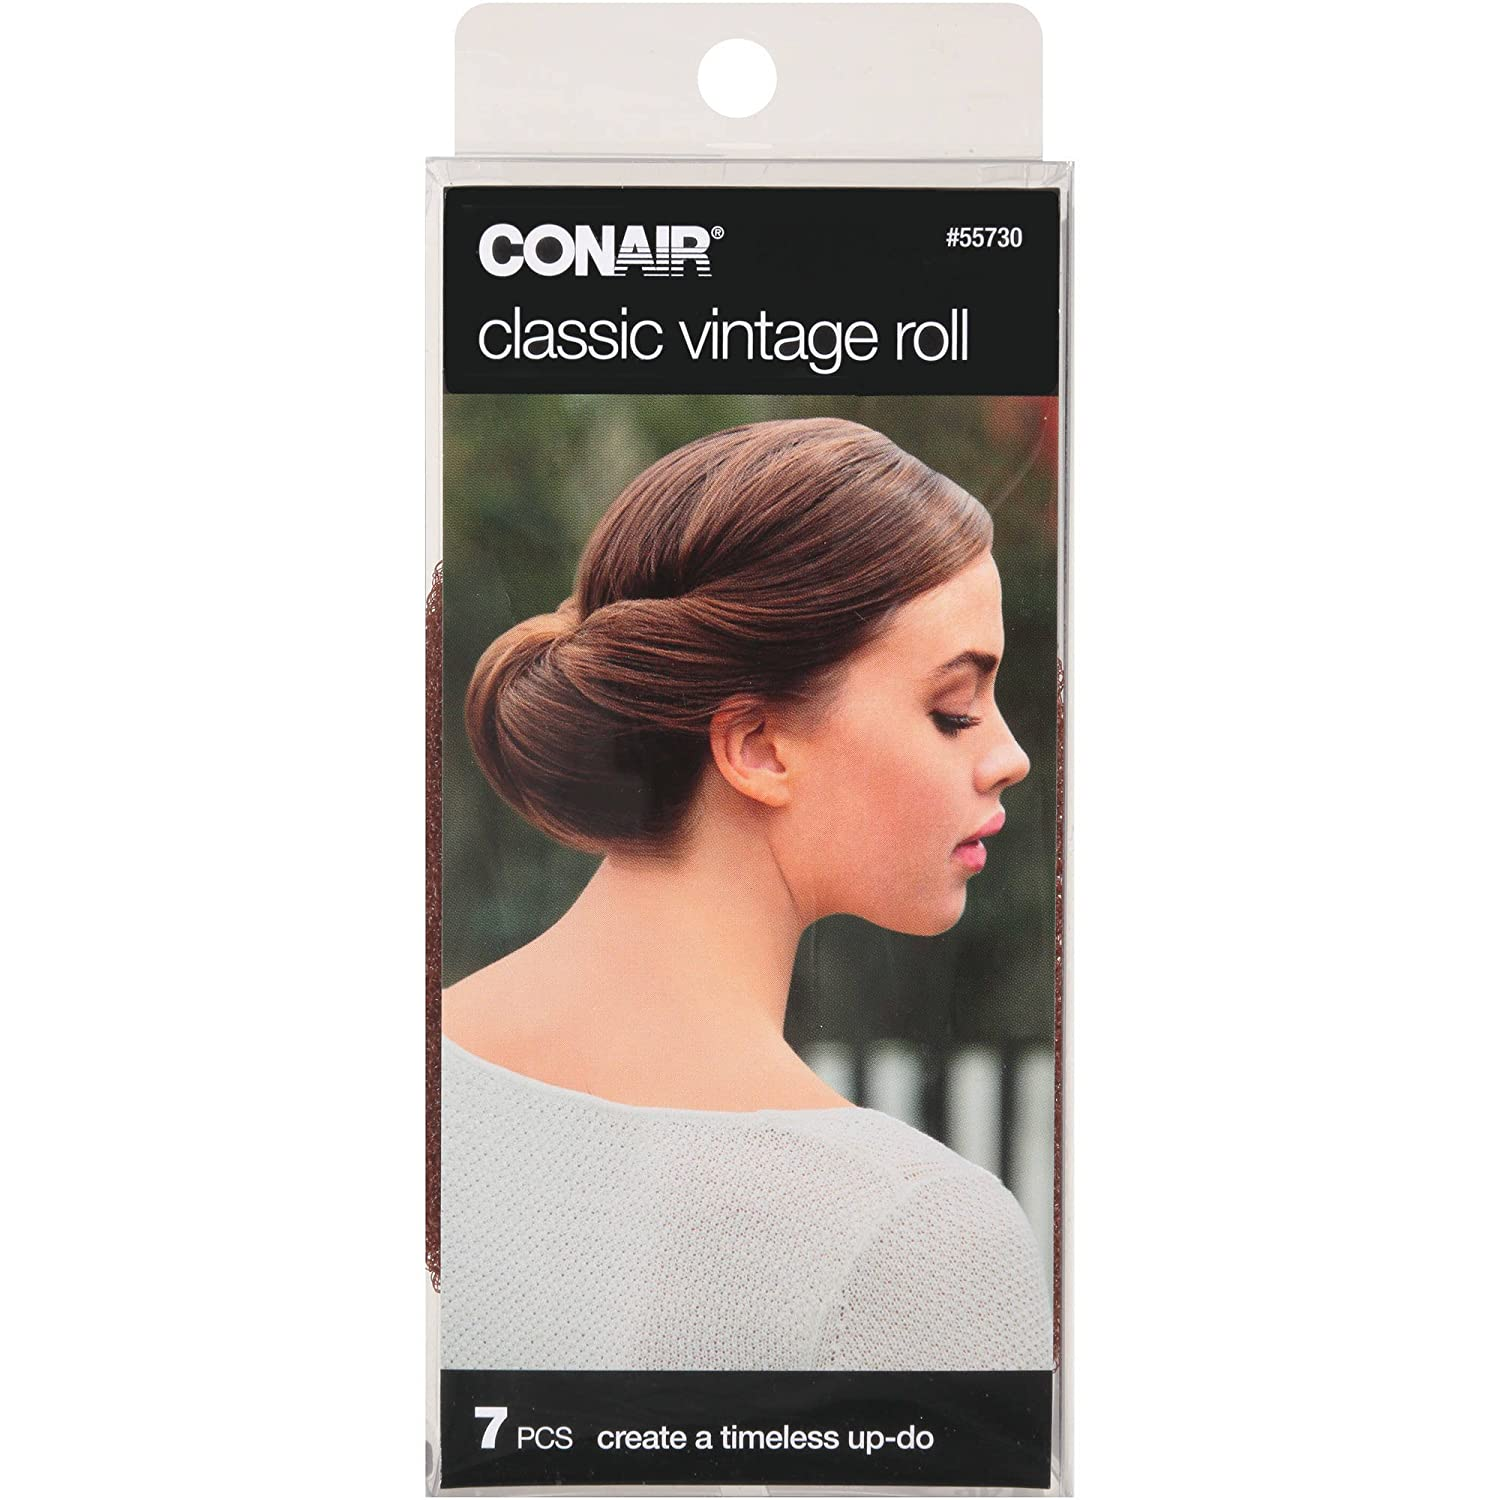 1940s Hair Snoods- Buy, Knit, Crochet or Sew a Snood Conair 55730 Classic Vintage Hair Roll 7 Piece Kit $5.08 AT vintagedancer.com